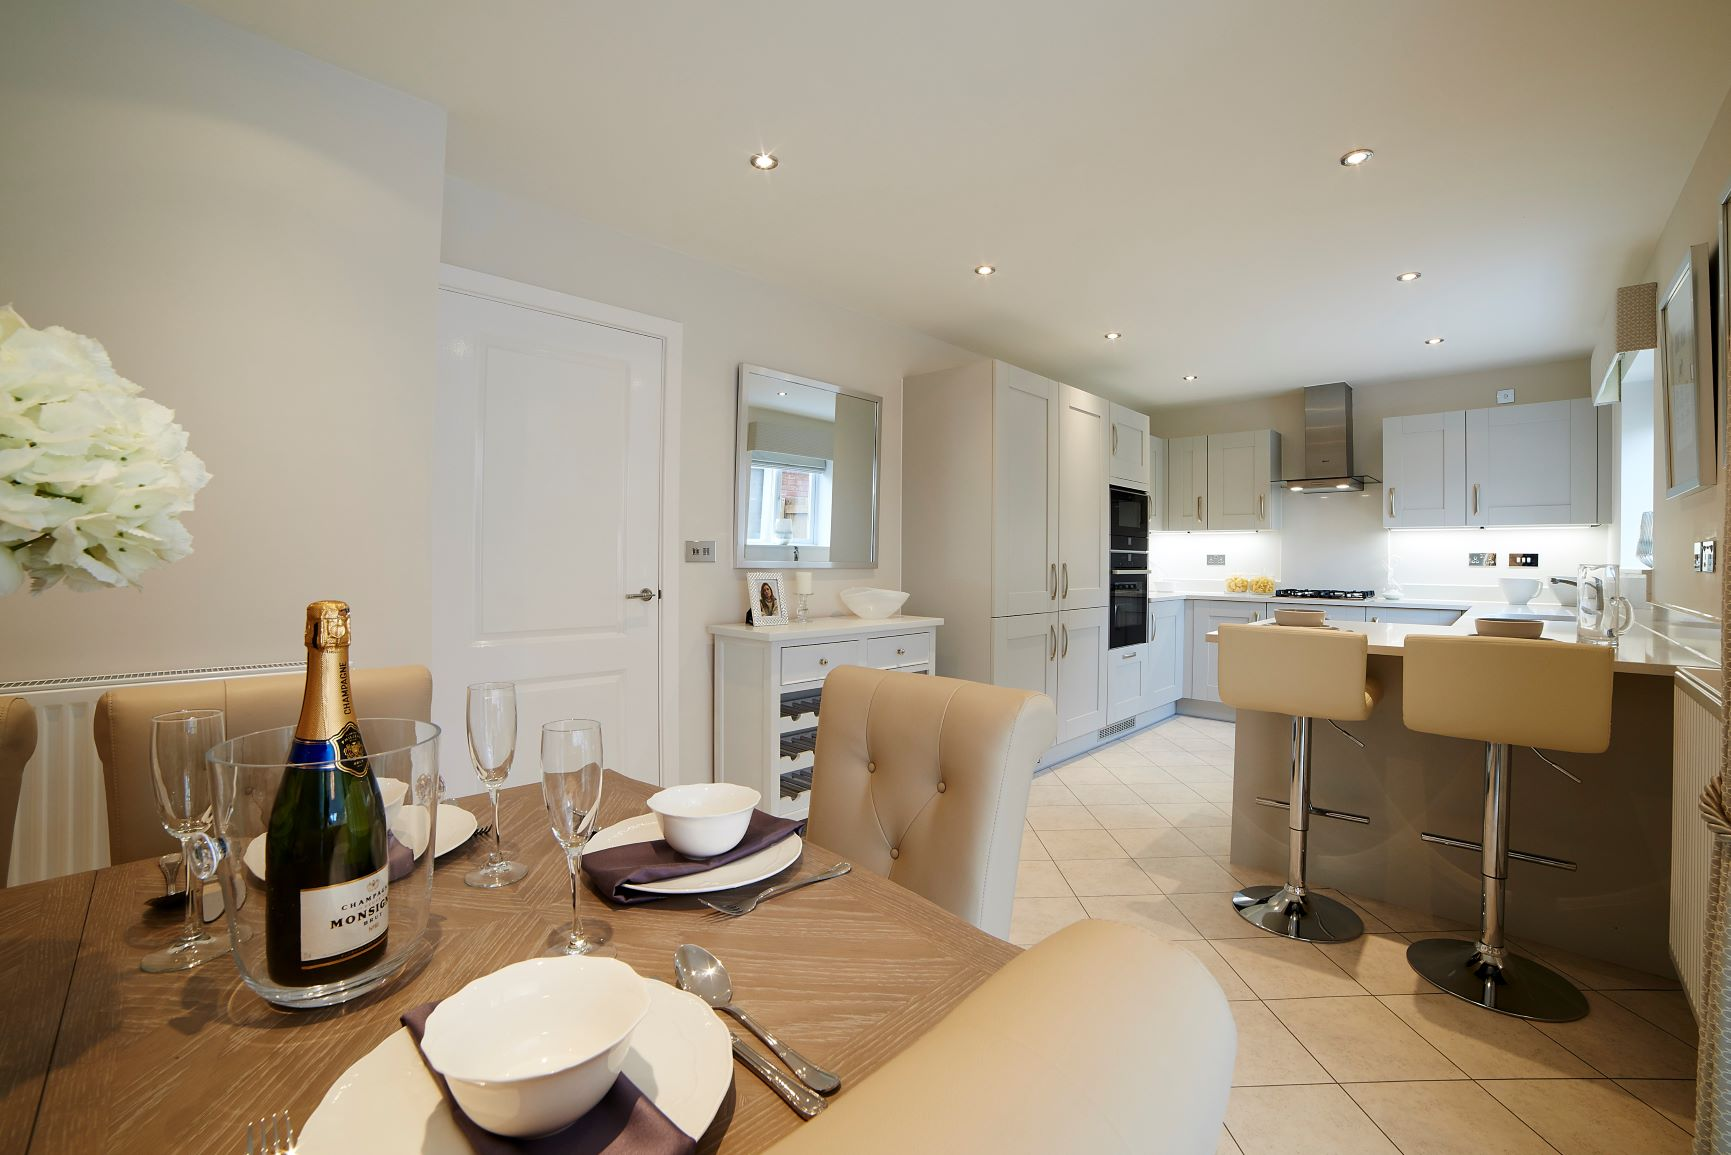 Jones Homes To Build In Thorpe Hesley Rotherham 183 Phpd Online